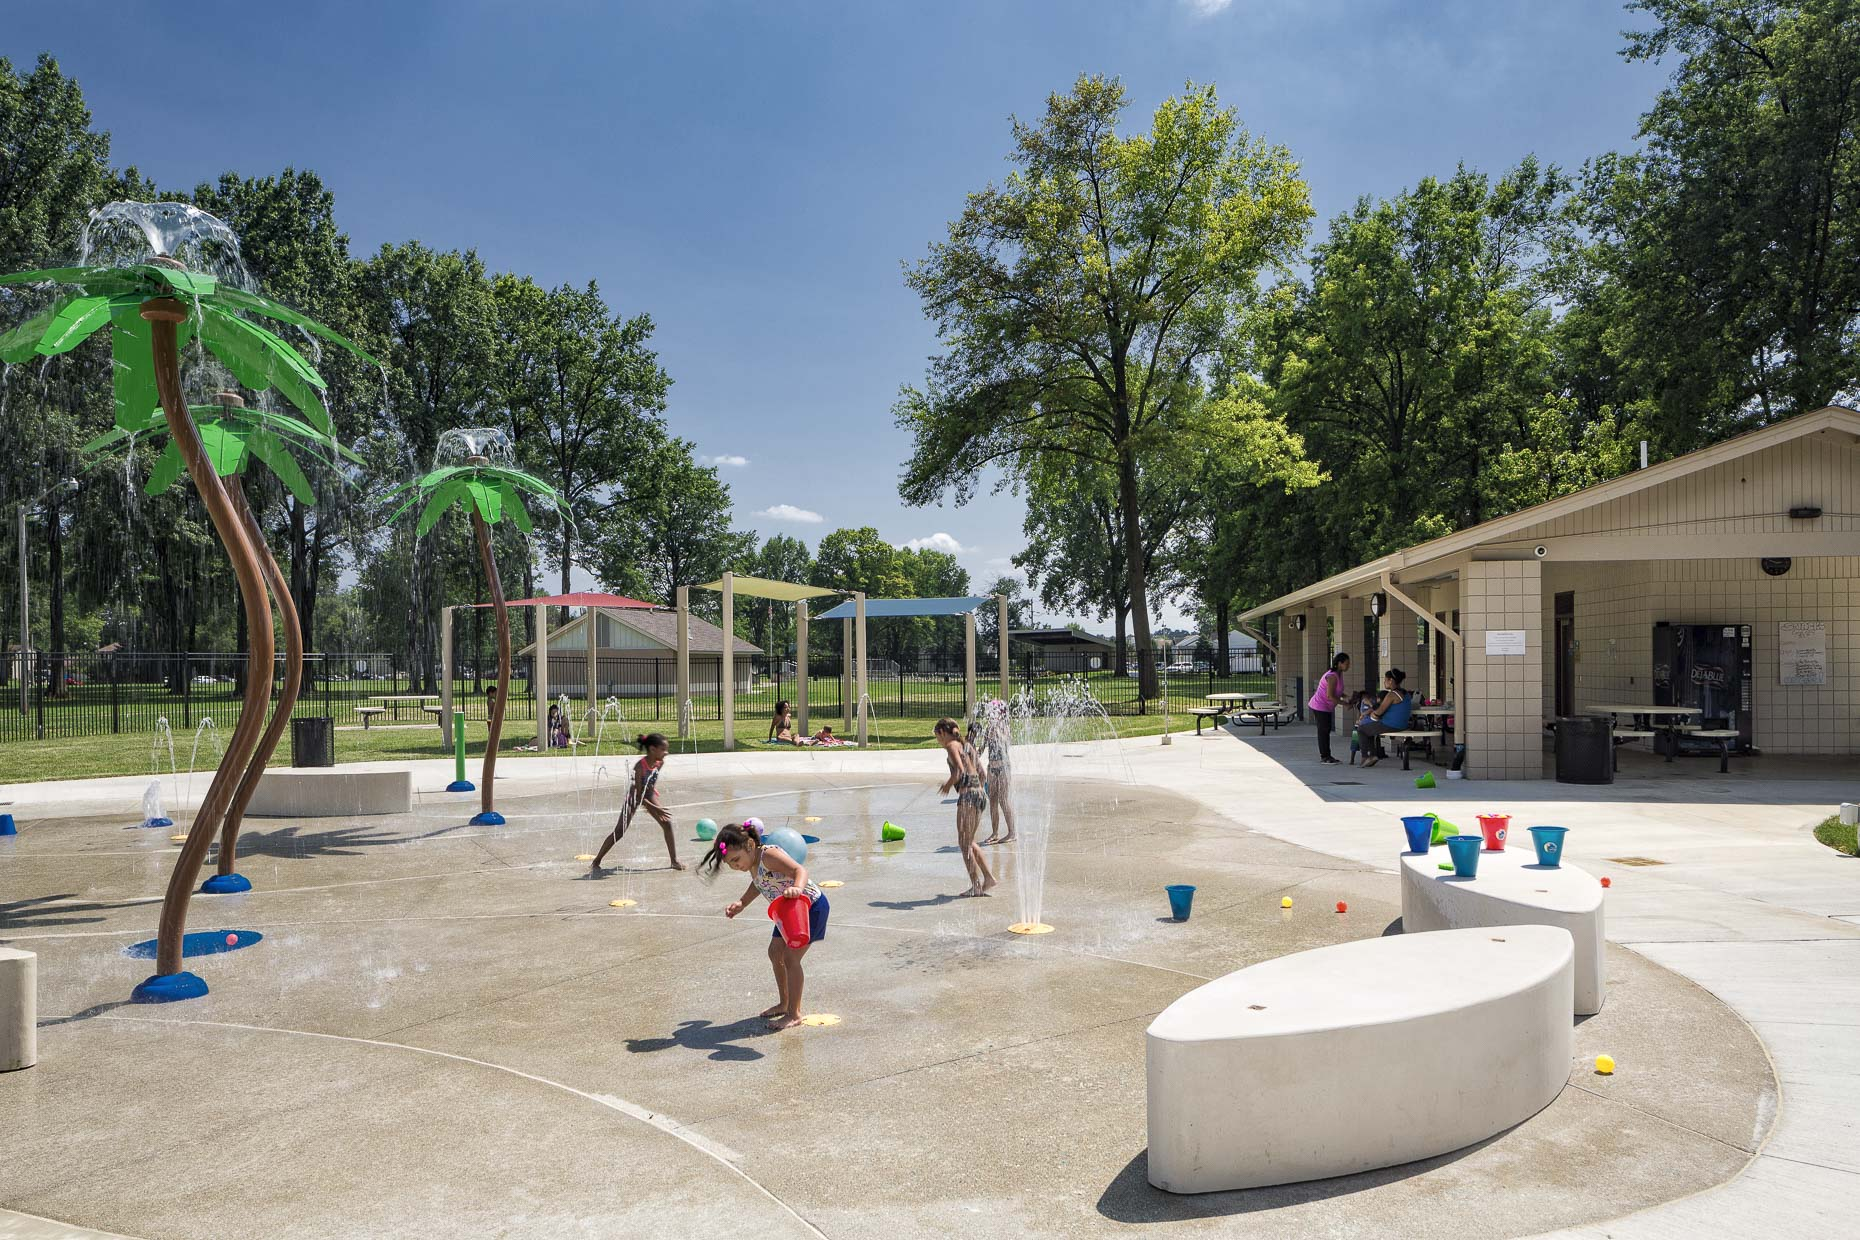 John Bishop Park Splash Pad by MSA Architects photographed by Lauren K Davis based in Columbus, Ohio